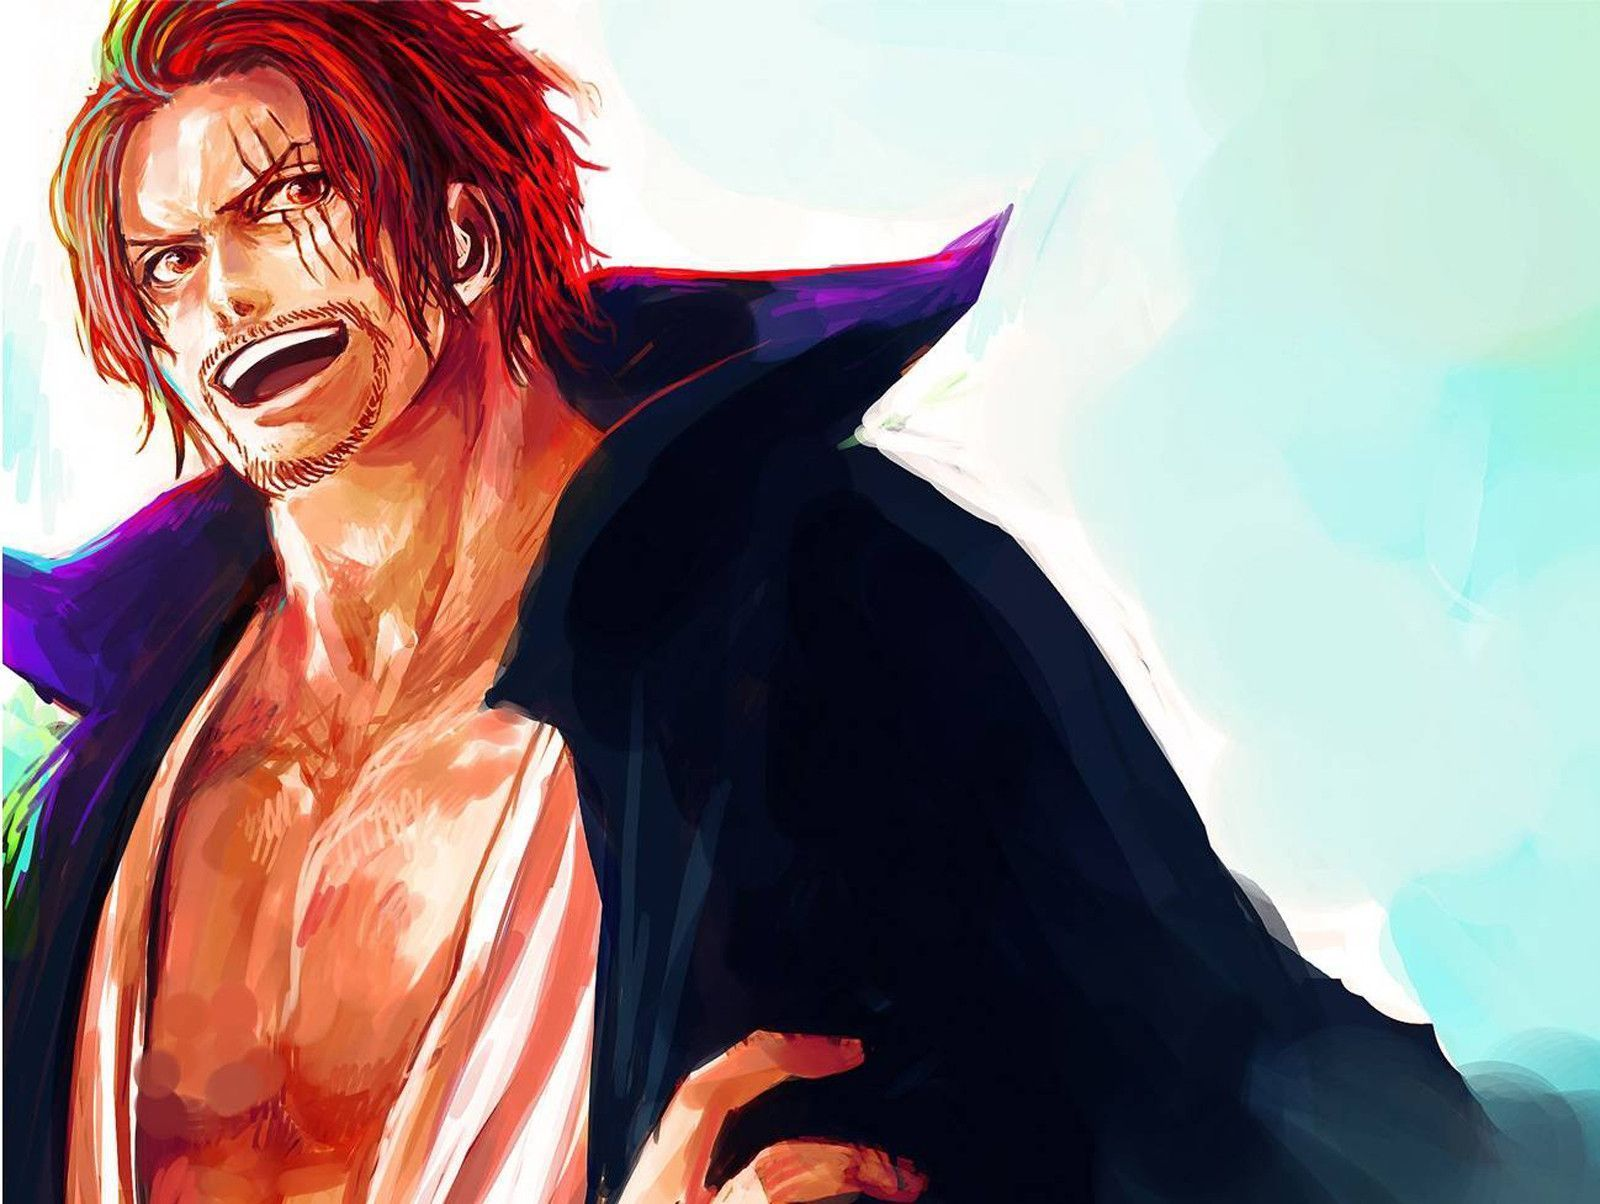 Pix For Shanks Wallpaper Shanks Mihawk One Piece Shank Anime